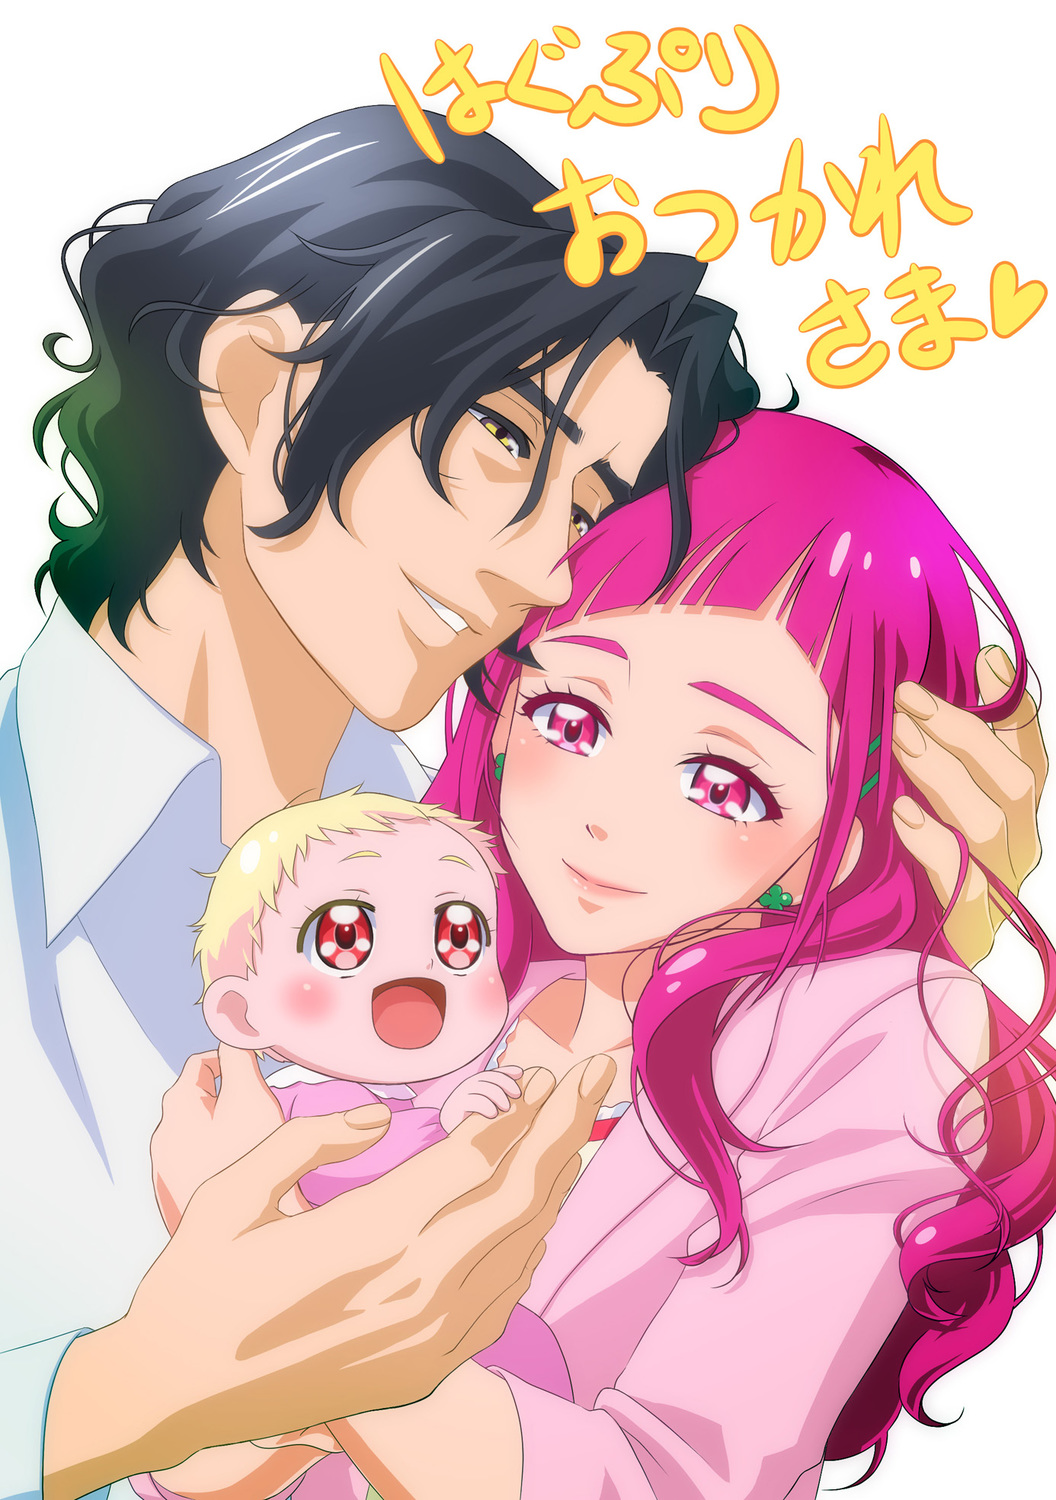 1boy 2girls :d baby bangs black_hair blonde_hair closed_mouth couple family father_and_daughter george_kurai highres hug-tan_(precure) hugtto!_precure husband_and_wife long_hair looking_at_another mother_and_daughter multiple_girls nono_hana older open_mouth pink_eyes pink_hair precure ruuka short_hair simple_background smile spoilers thick_eyebrows toddlercon white_background yellow_eyes